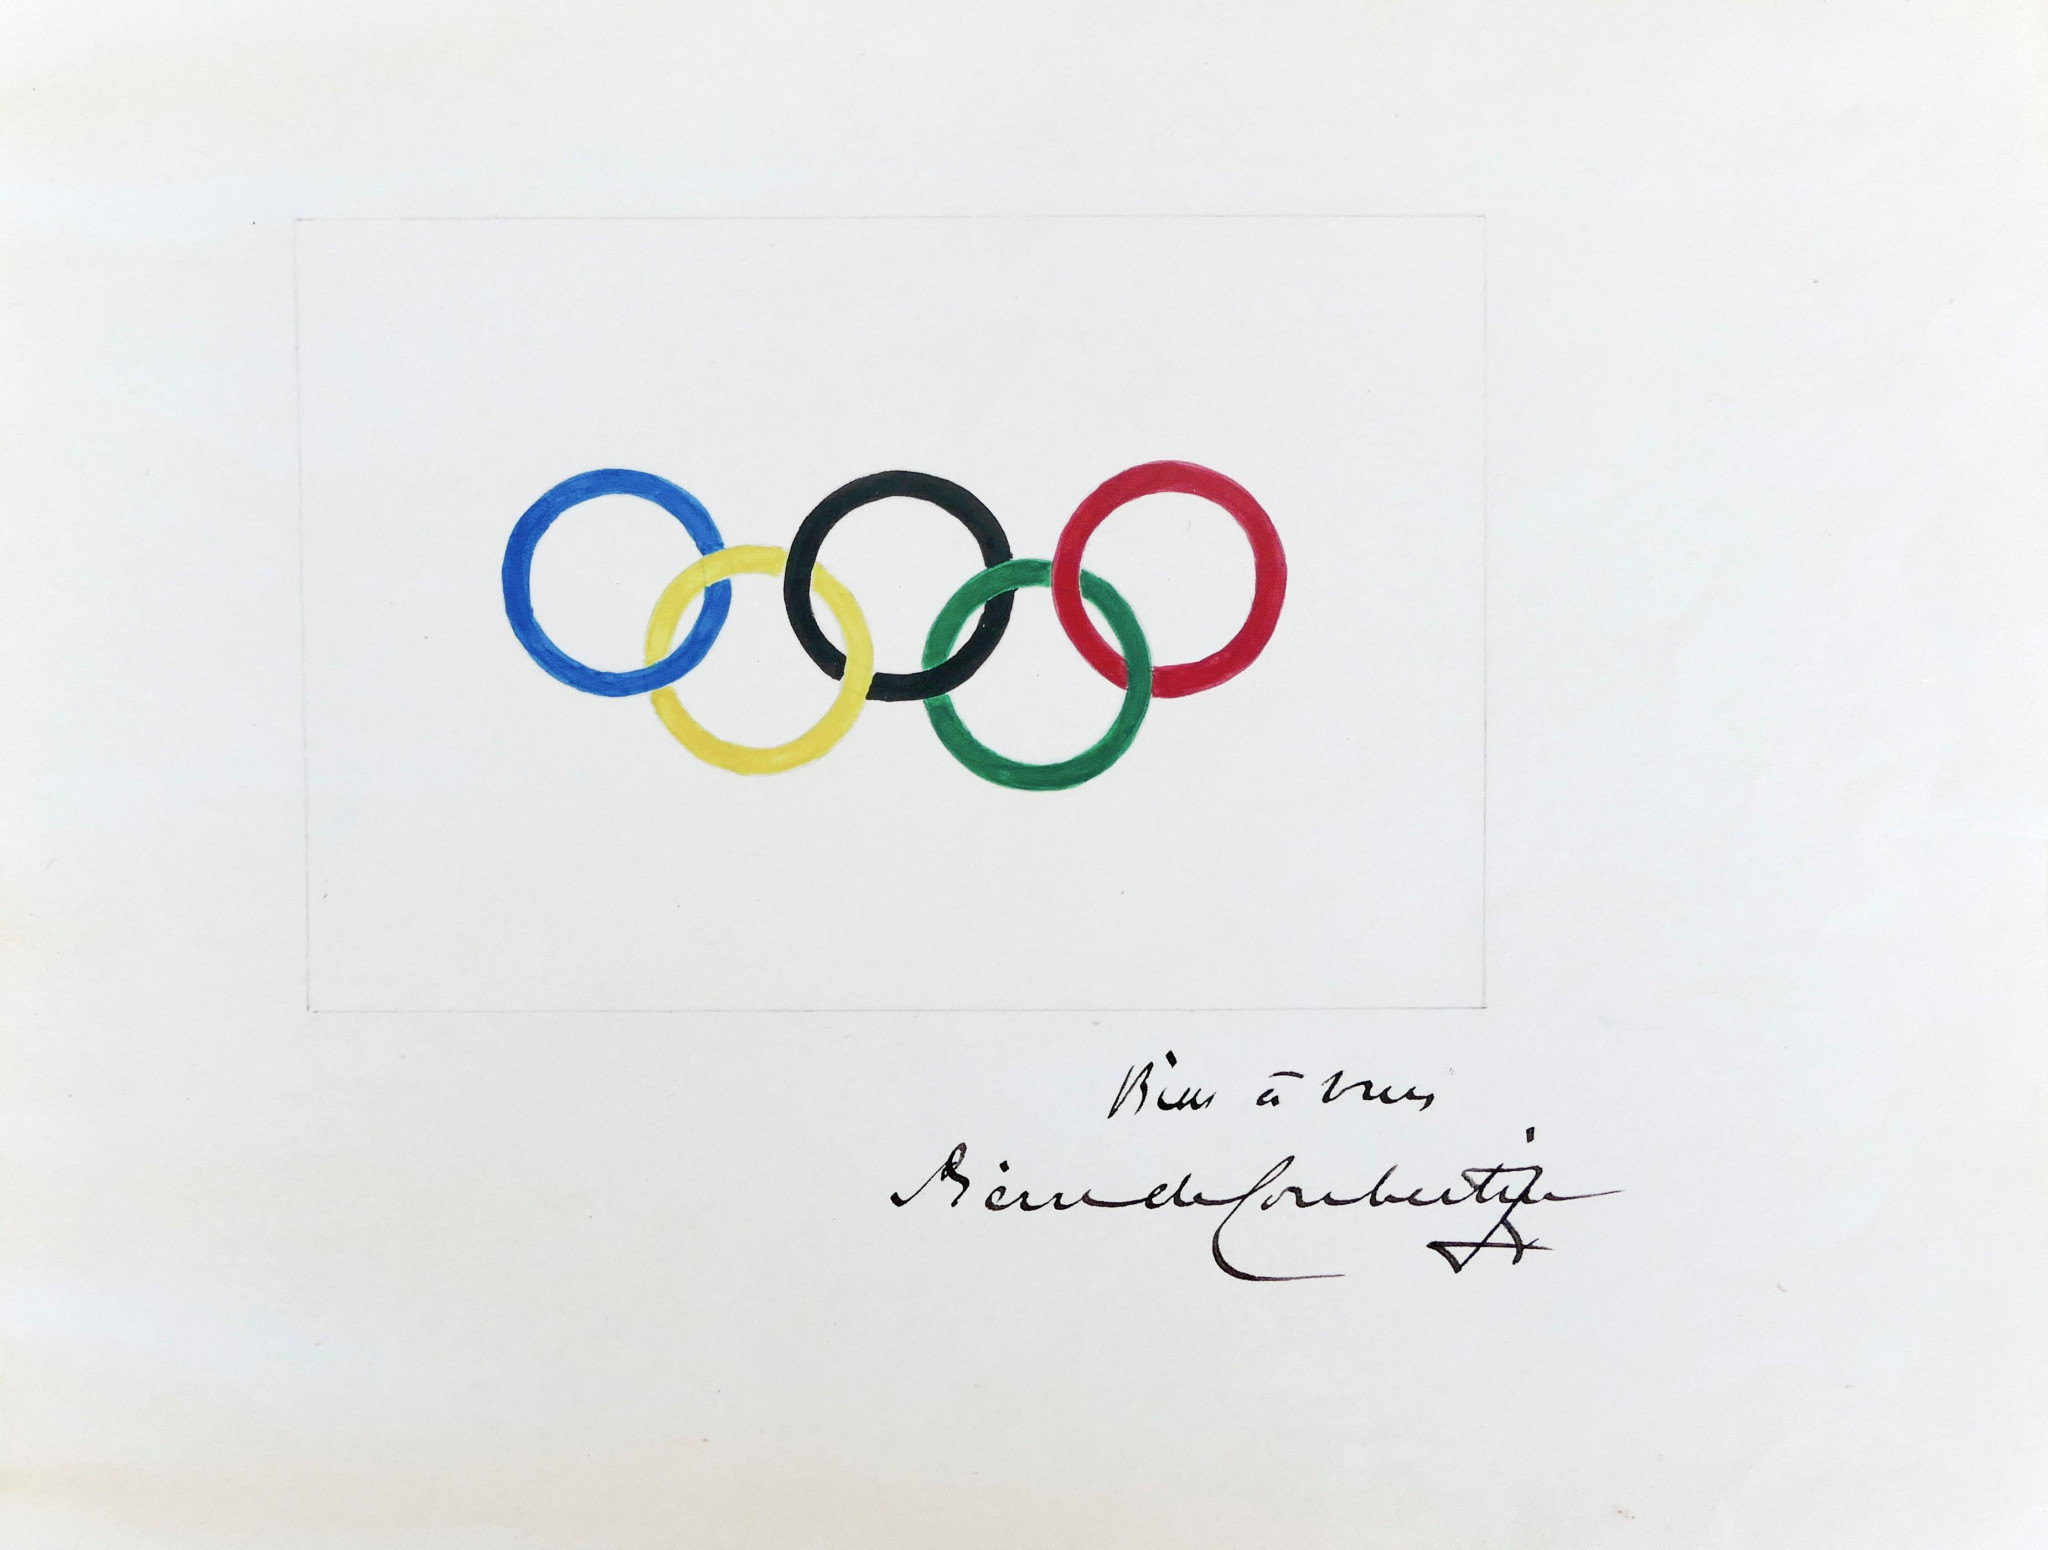 Original Coubertin drawing of Olympic rings sells for €185,000 at auction